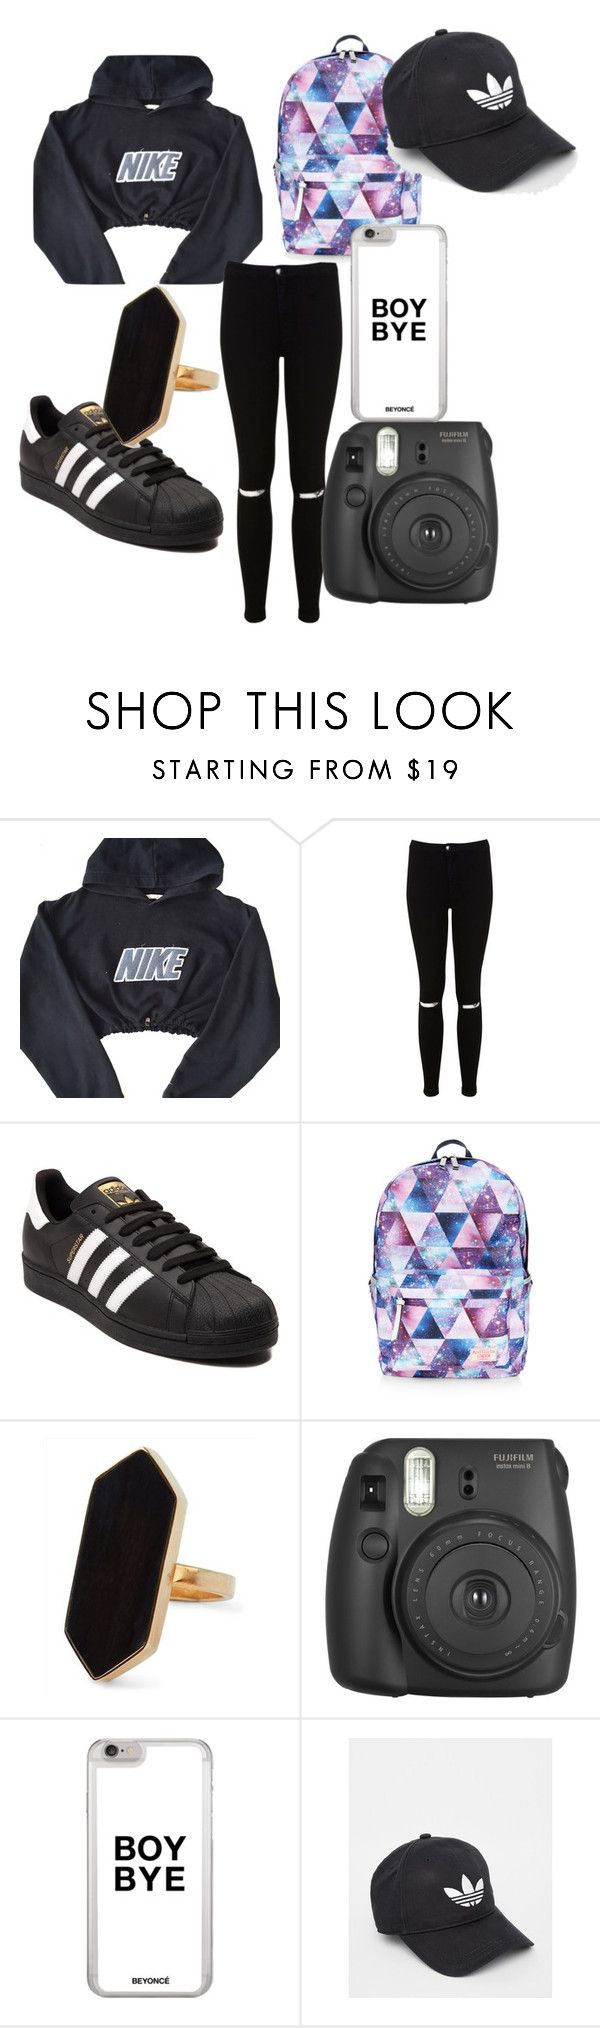 """at night"" by queenshania ❤ liked on Polyvore featuring NIKE, Miss Selfridge, adidas, Accessorize and Jaeger"